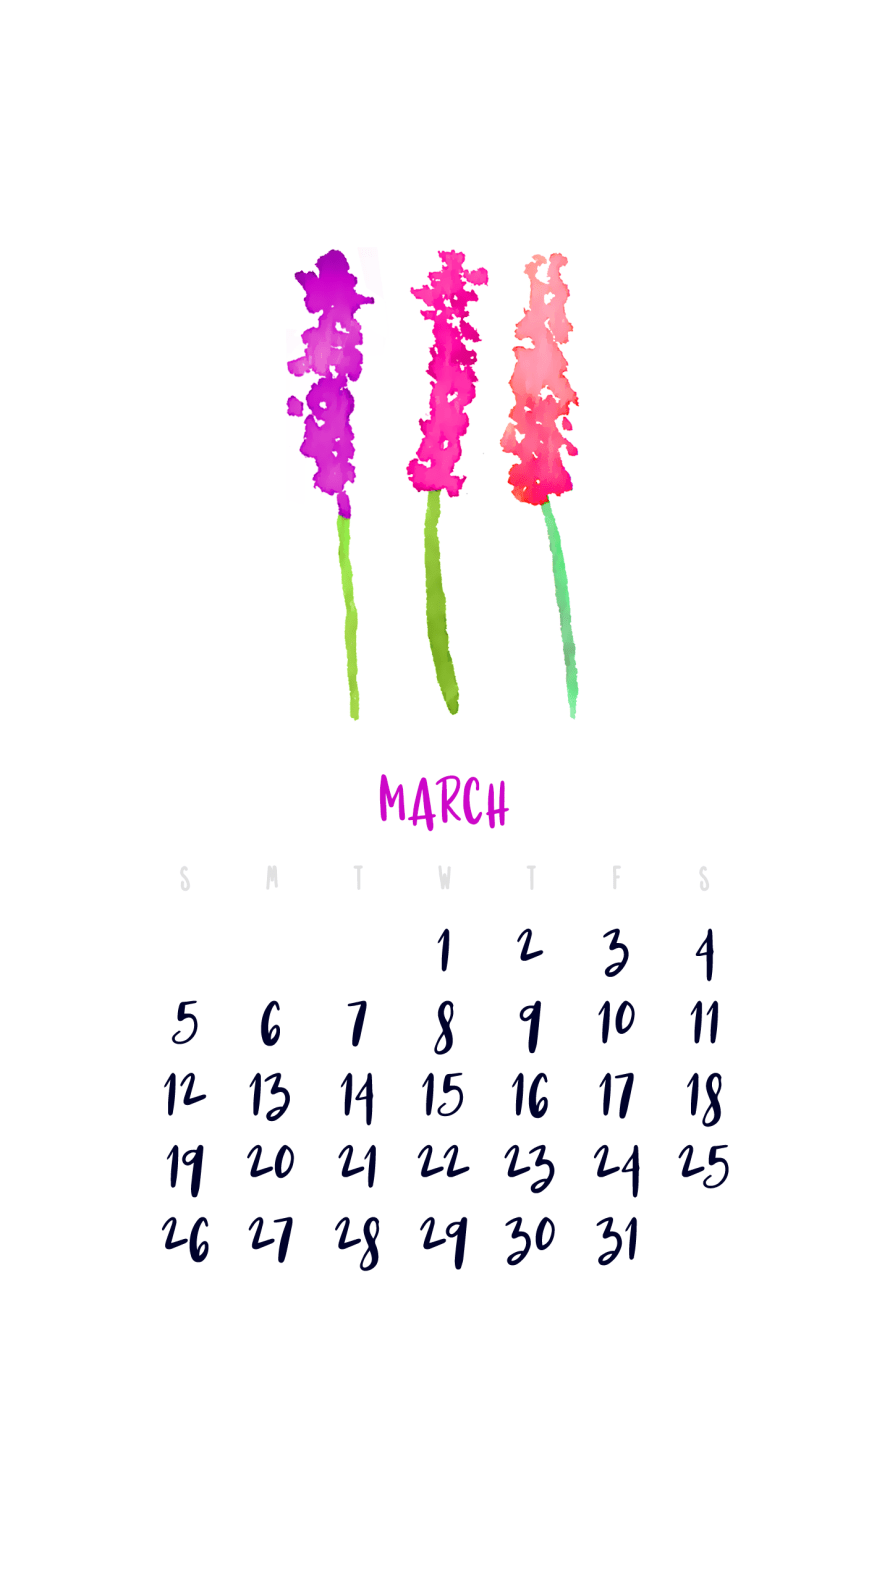 I Try DIY | March 2017 Smartphone Wallpaper Calendar